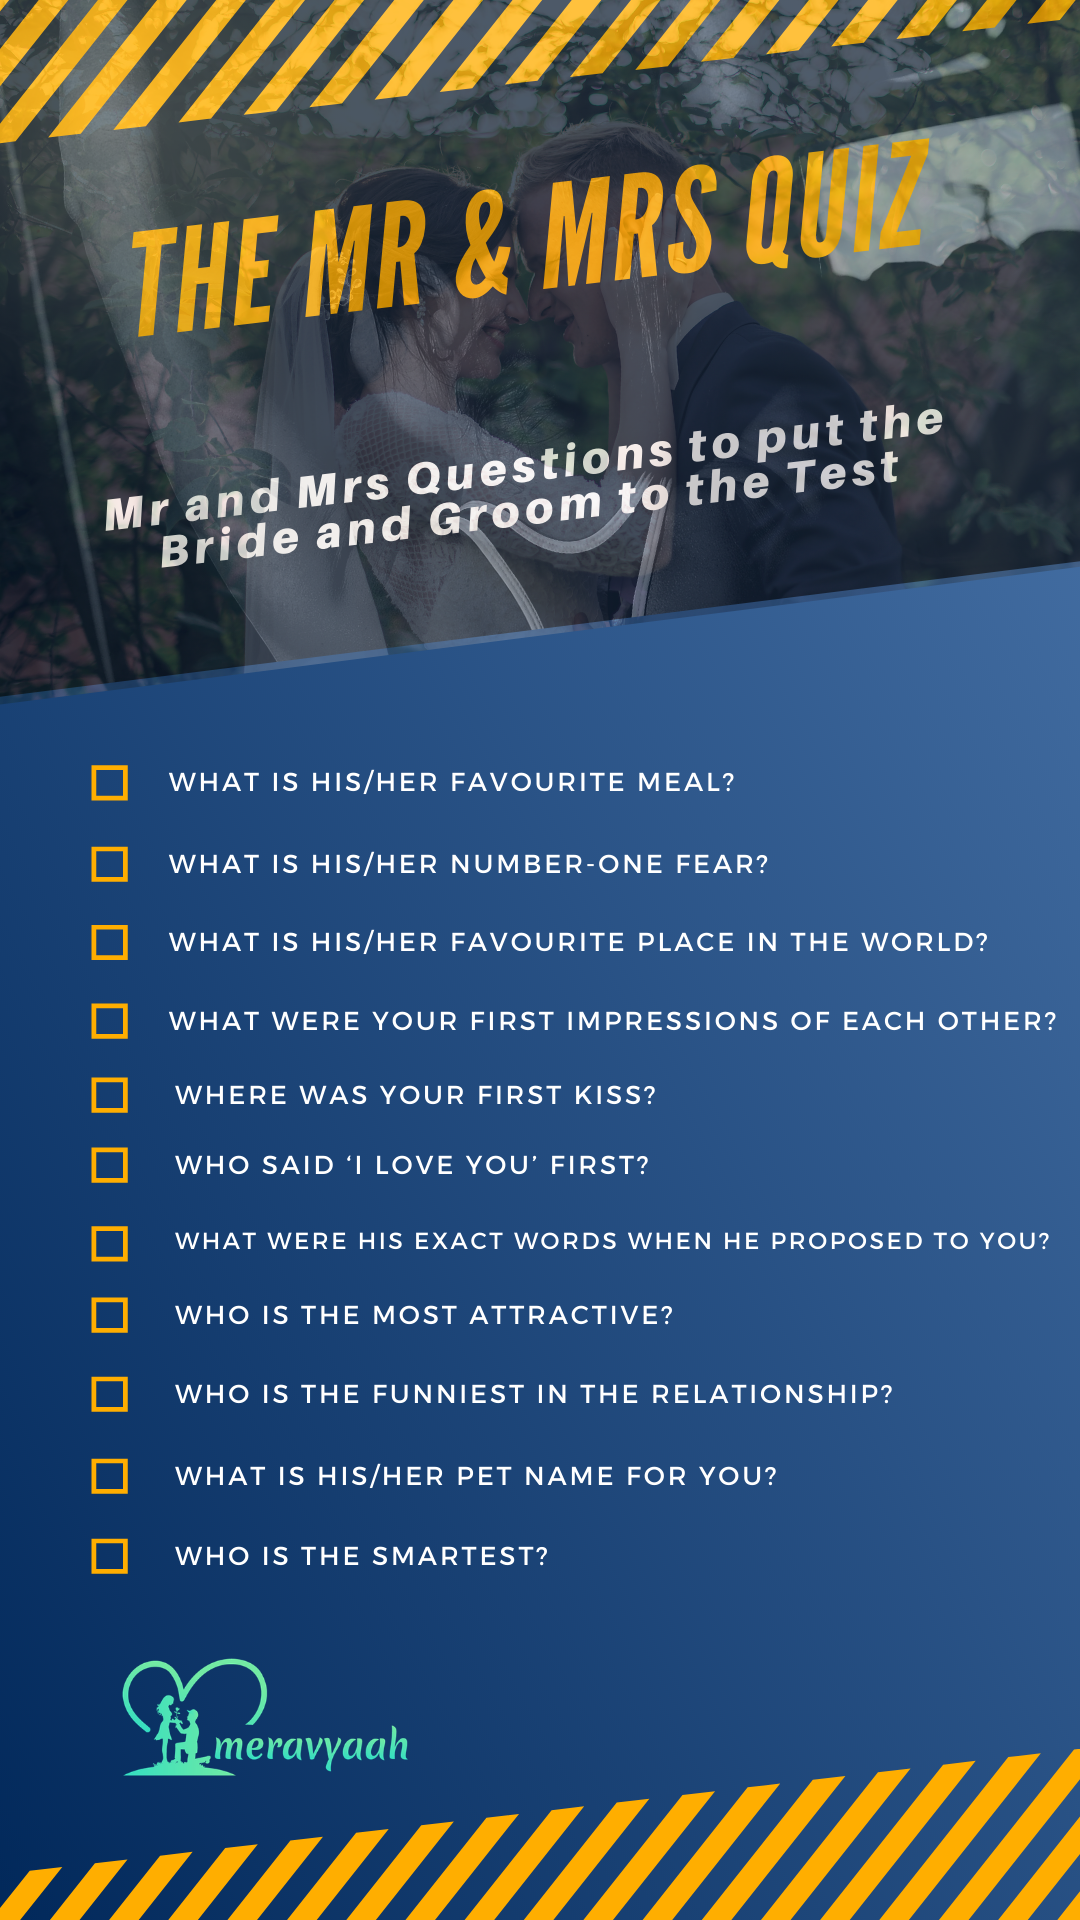 The Mr & Mrs Quiz: Interesting Questions to Ask Bride and Groom